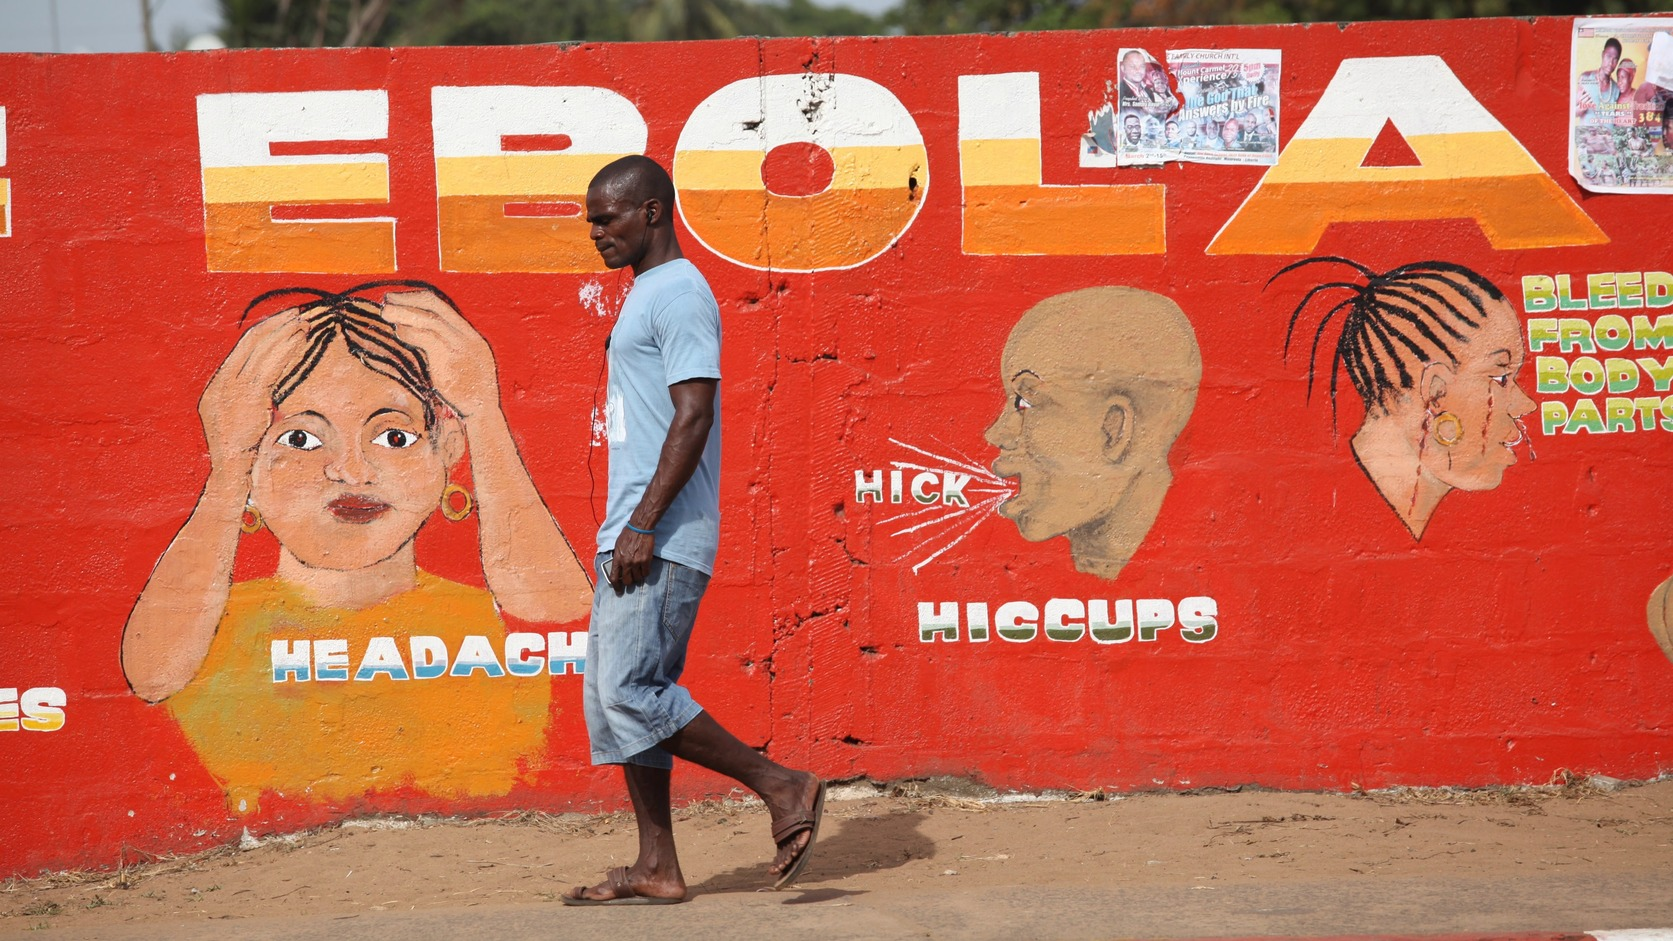 epa06727348 (FILE) - A Liberian man walk pass an ebola awareness painting on a wall in downtown Monrovia, Liberia, 22 March 2015 (reissued 11 May 2018). The World Health Organization (WHO) on 10 May 2018 said that 32 Ebola virus disease cases, including 18 deaths, were reported from Bikoro health zone, Equateur province, Democratic Republic of the Congo, of which were two confirmed, 18 probable and 12 suspected cases.  EPA/AHMED JALLANZO